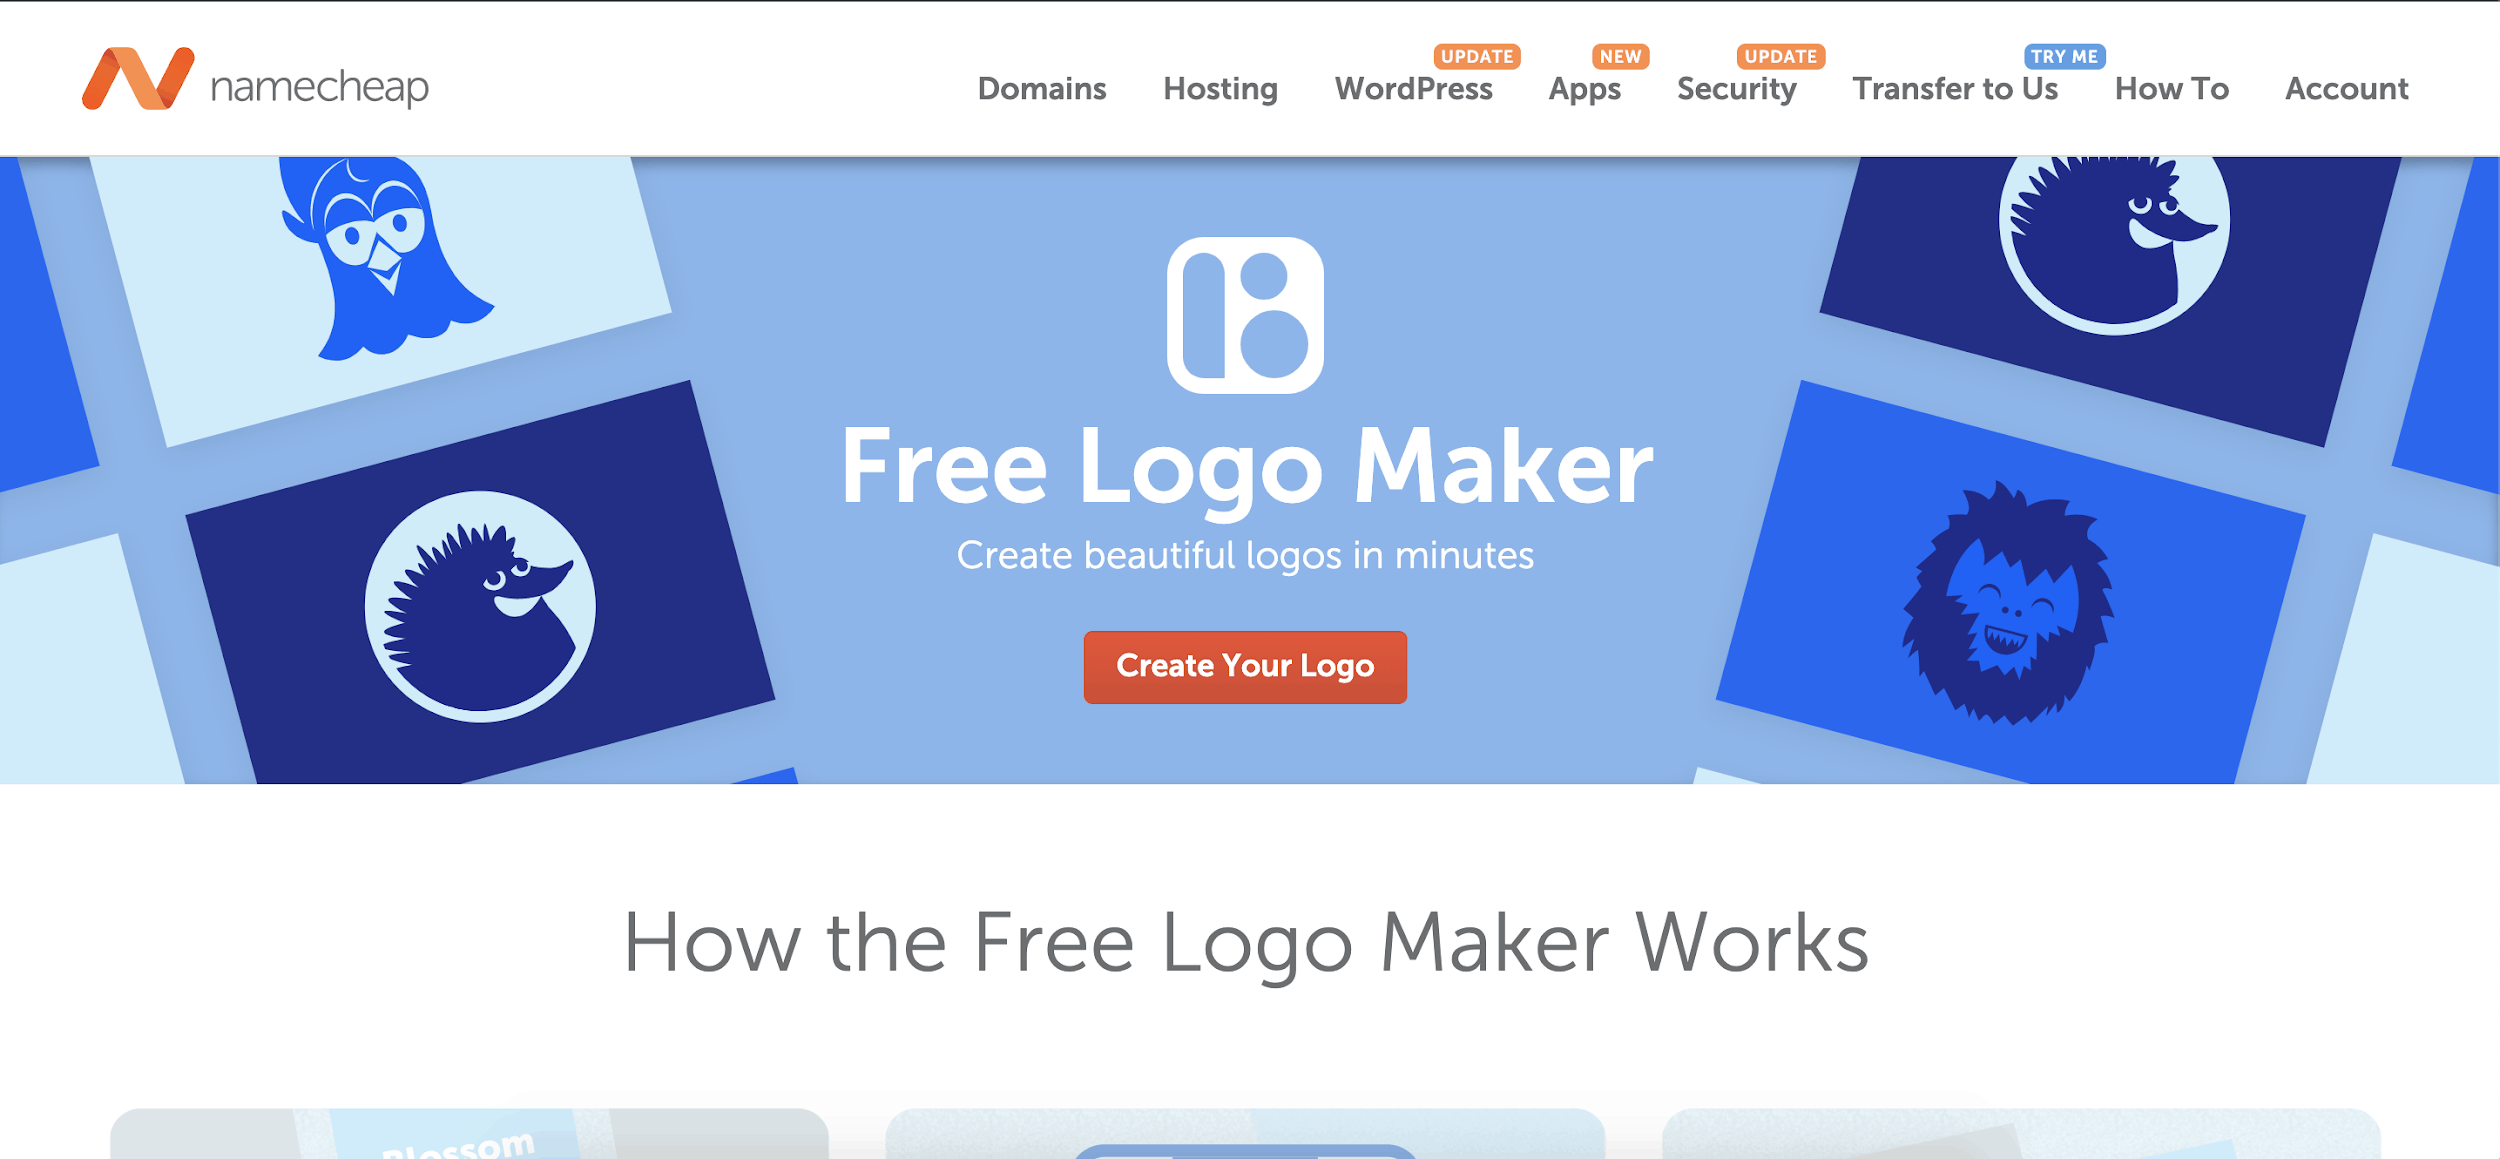 Namecheap Free Logo Maker - homepage screenshot